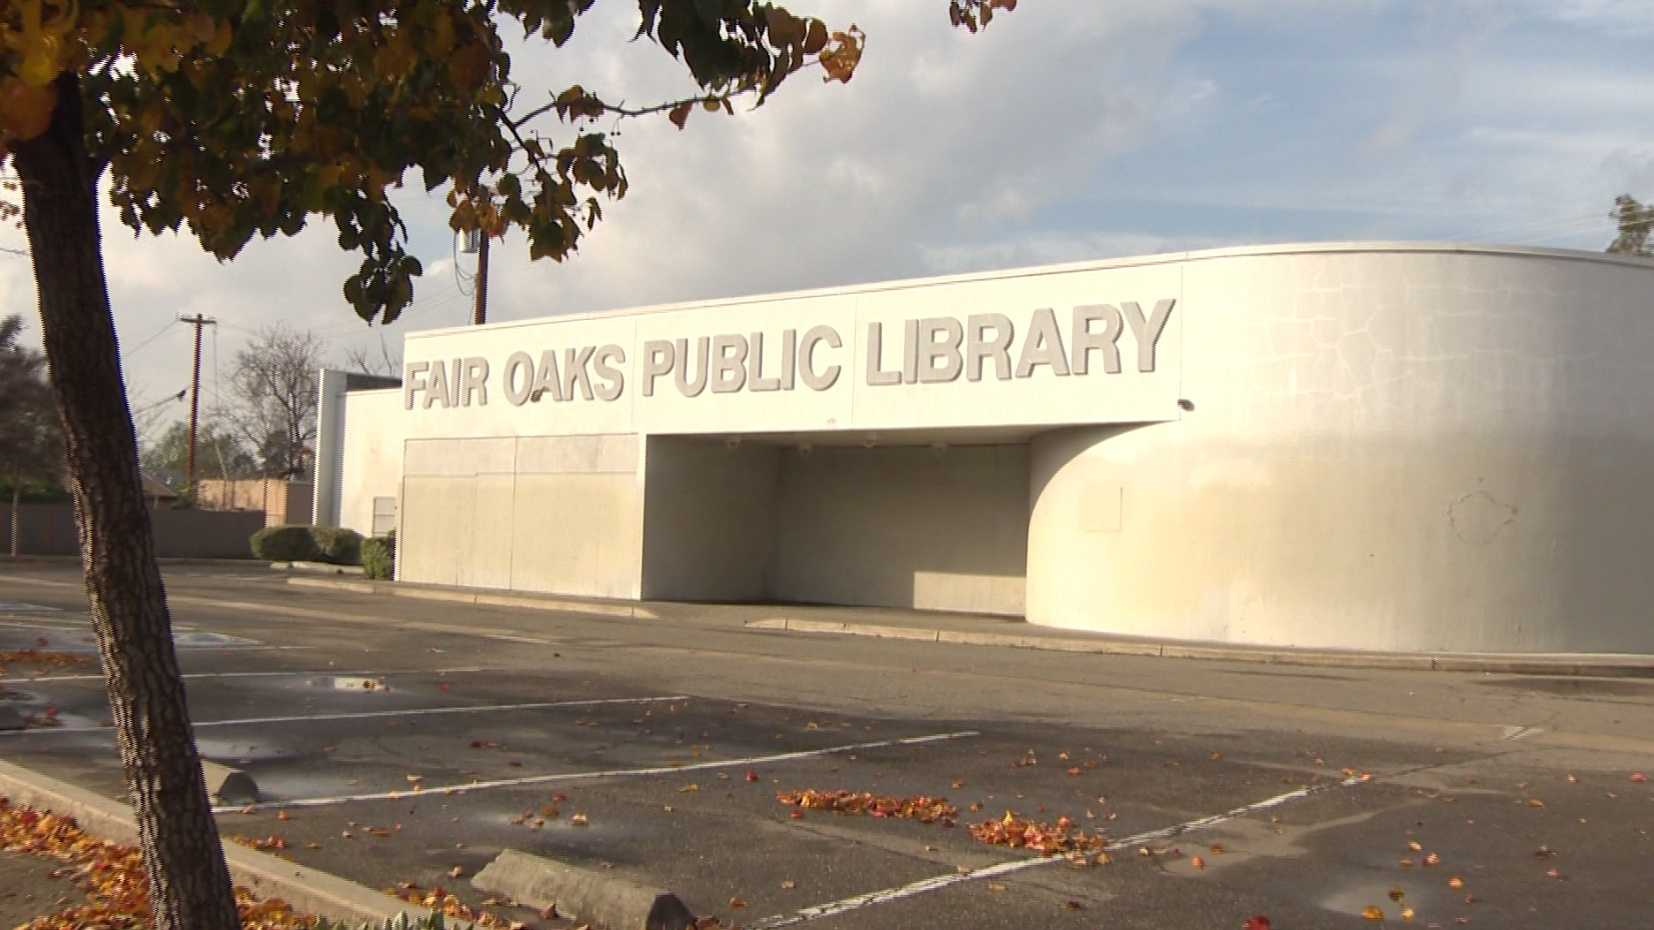 Fair Oaks Library in east Stockton was closed due to budget problems. The city council recently approved funds to reopen the branch.